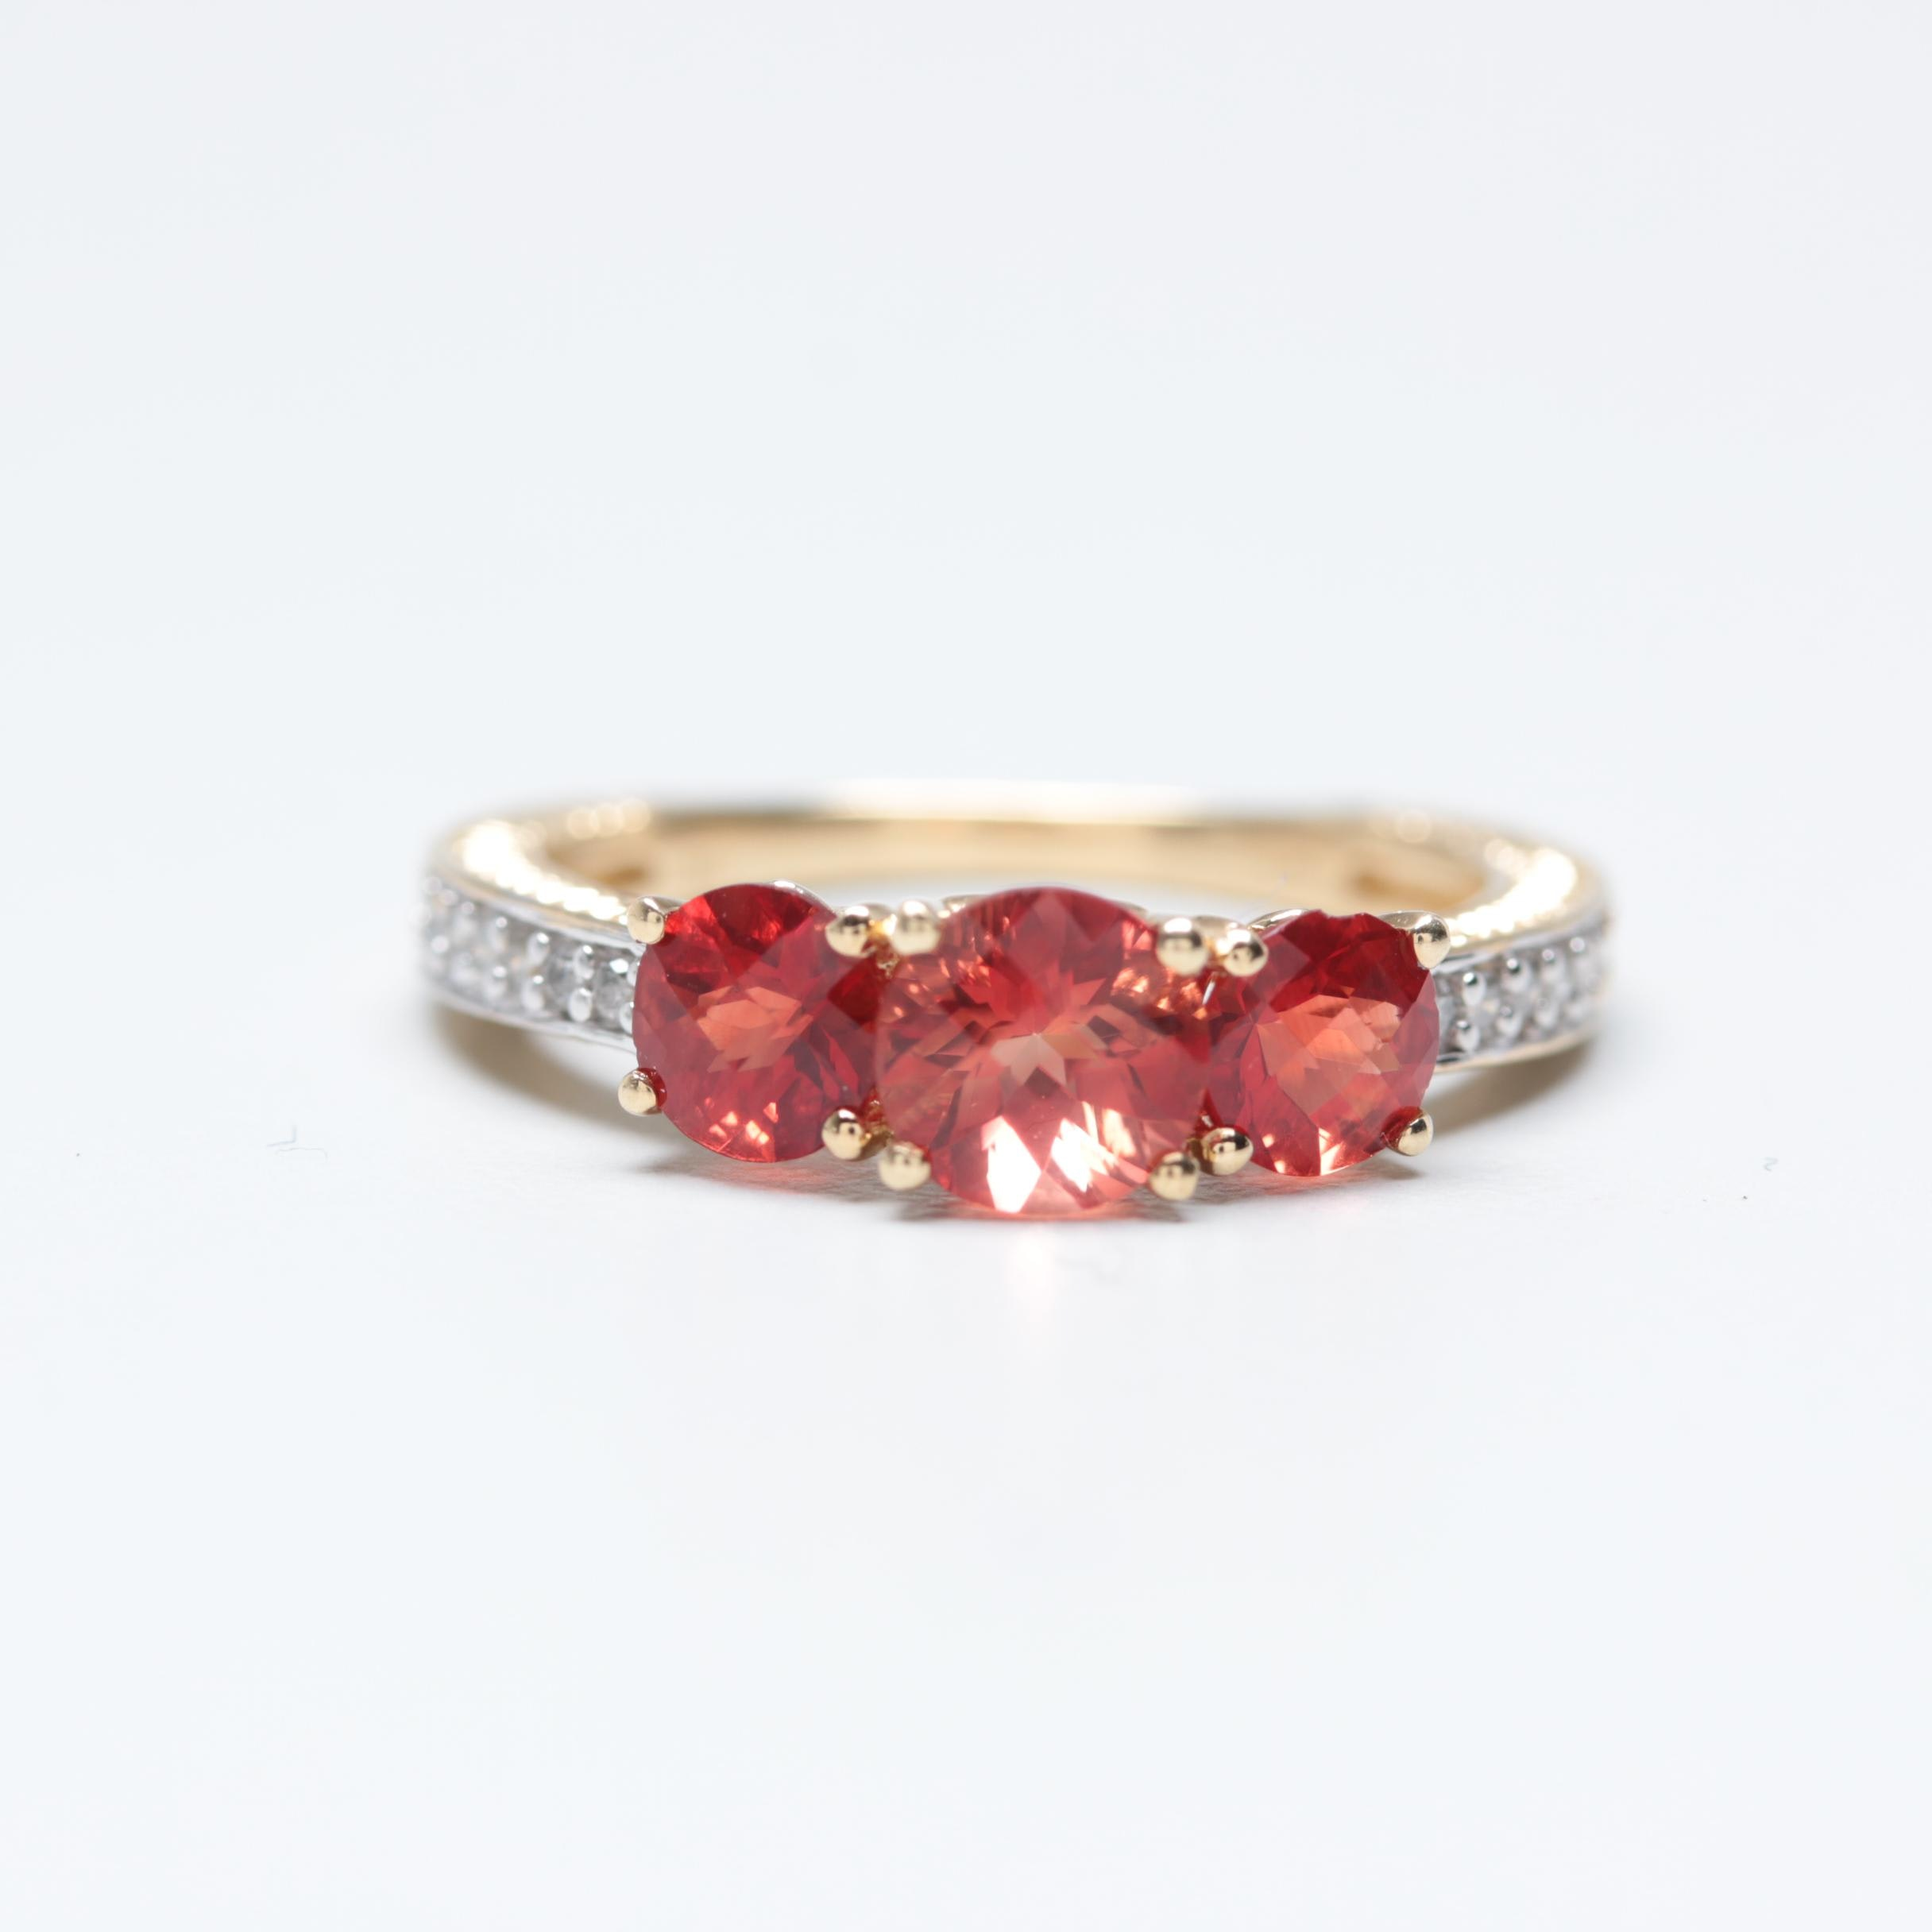 10K Yellow Gold Andesine and Diamond Ring